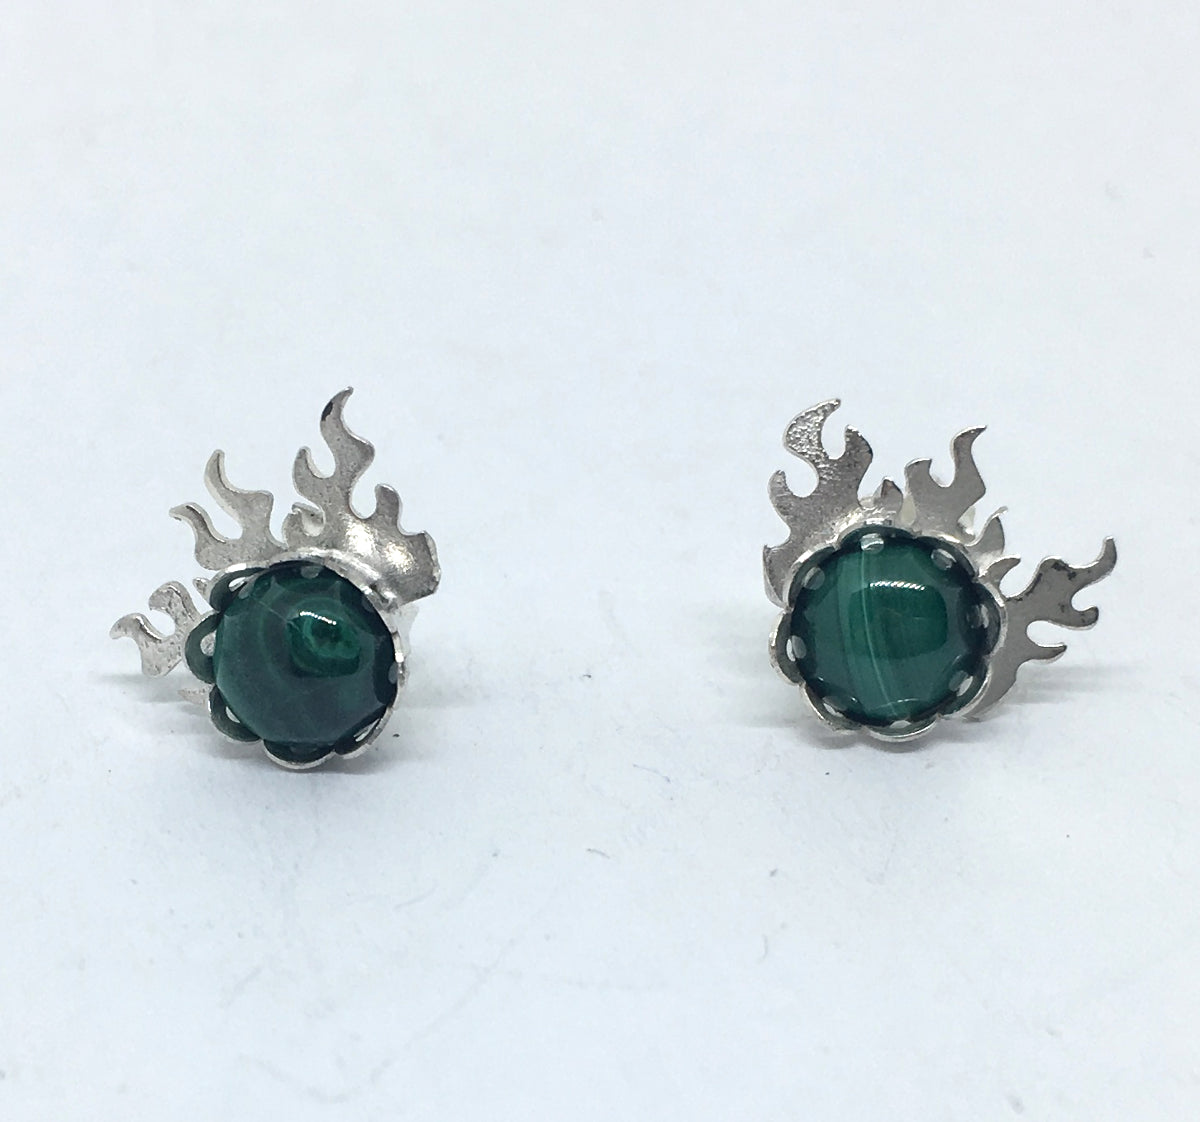 fire earrings with malachite gemstones  in sterling silver